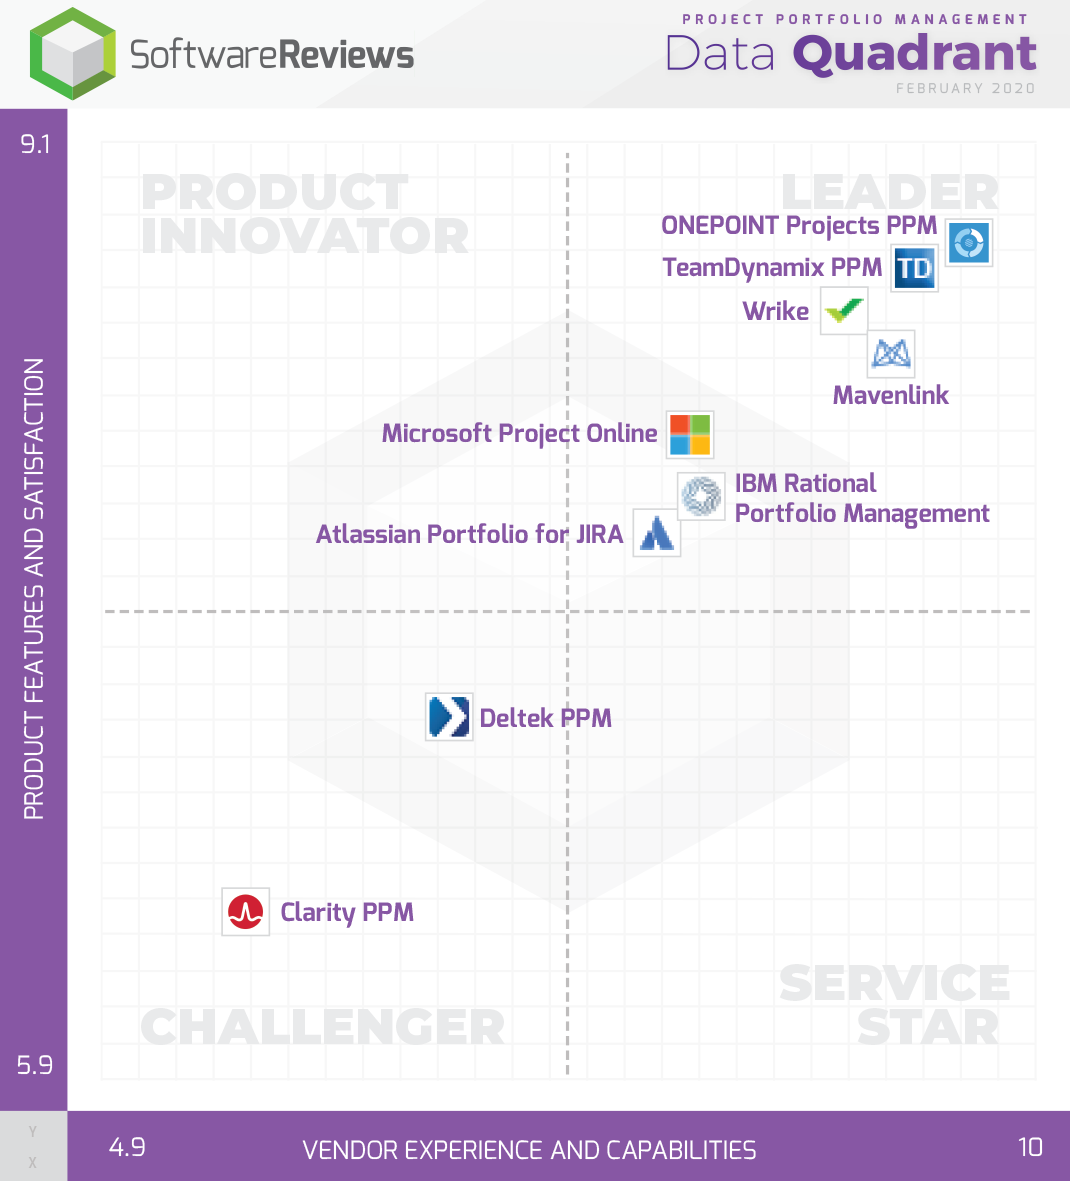 Project Portfolio Management Data Quadrant